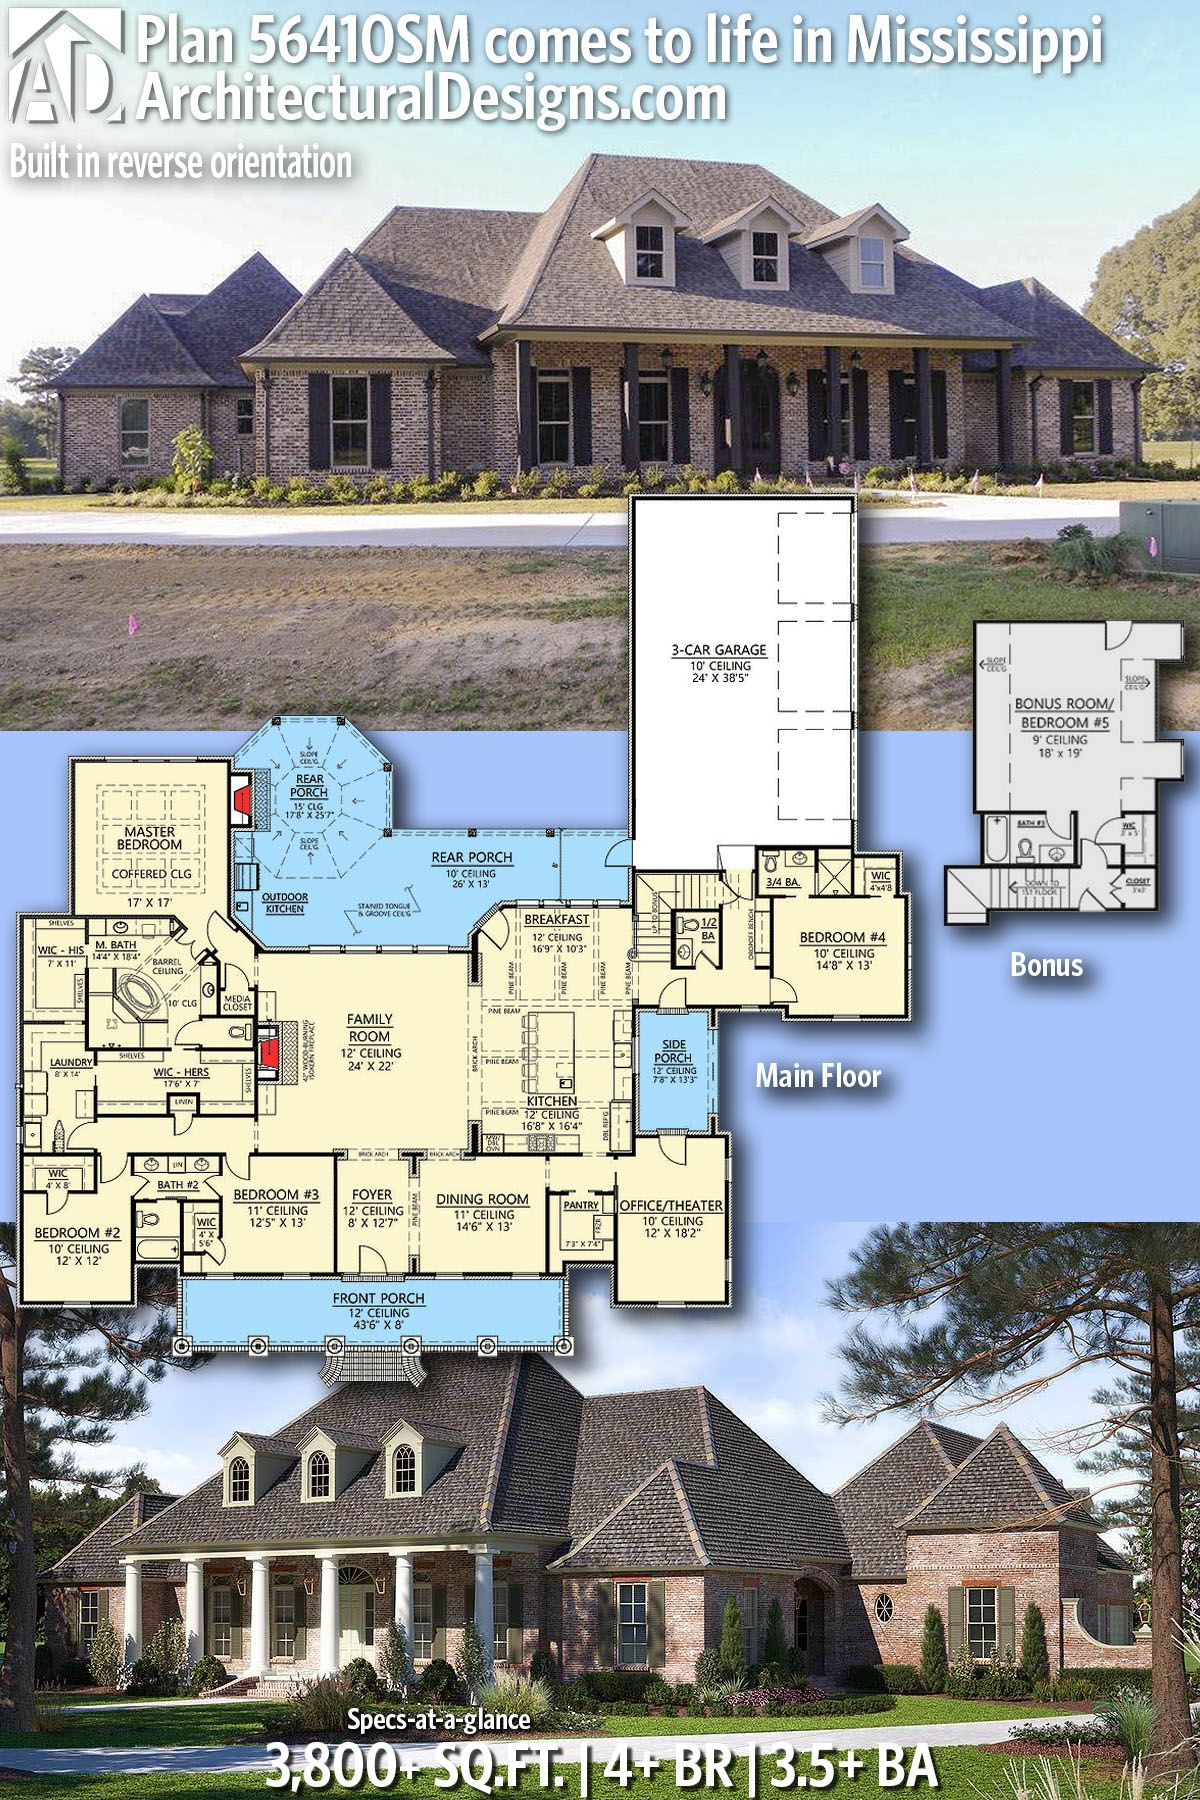 Architectural Designs House Plan 56410SM client built in